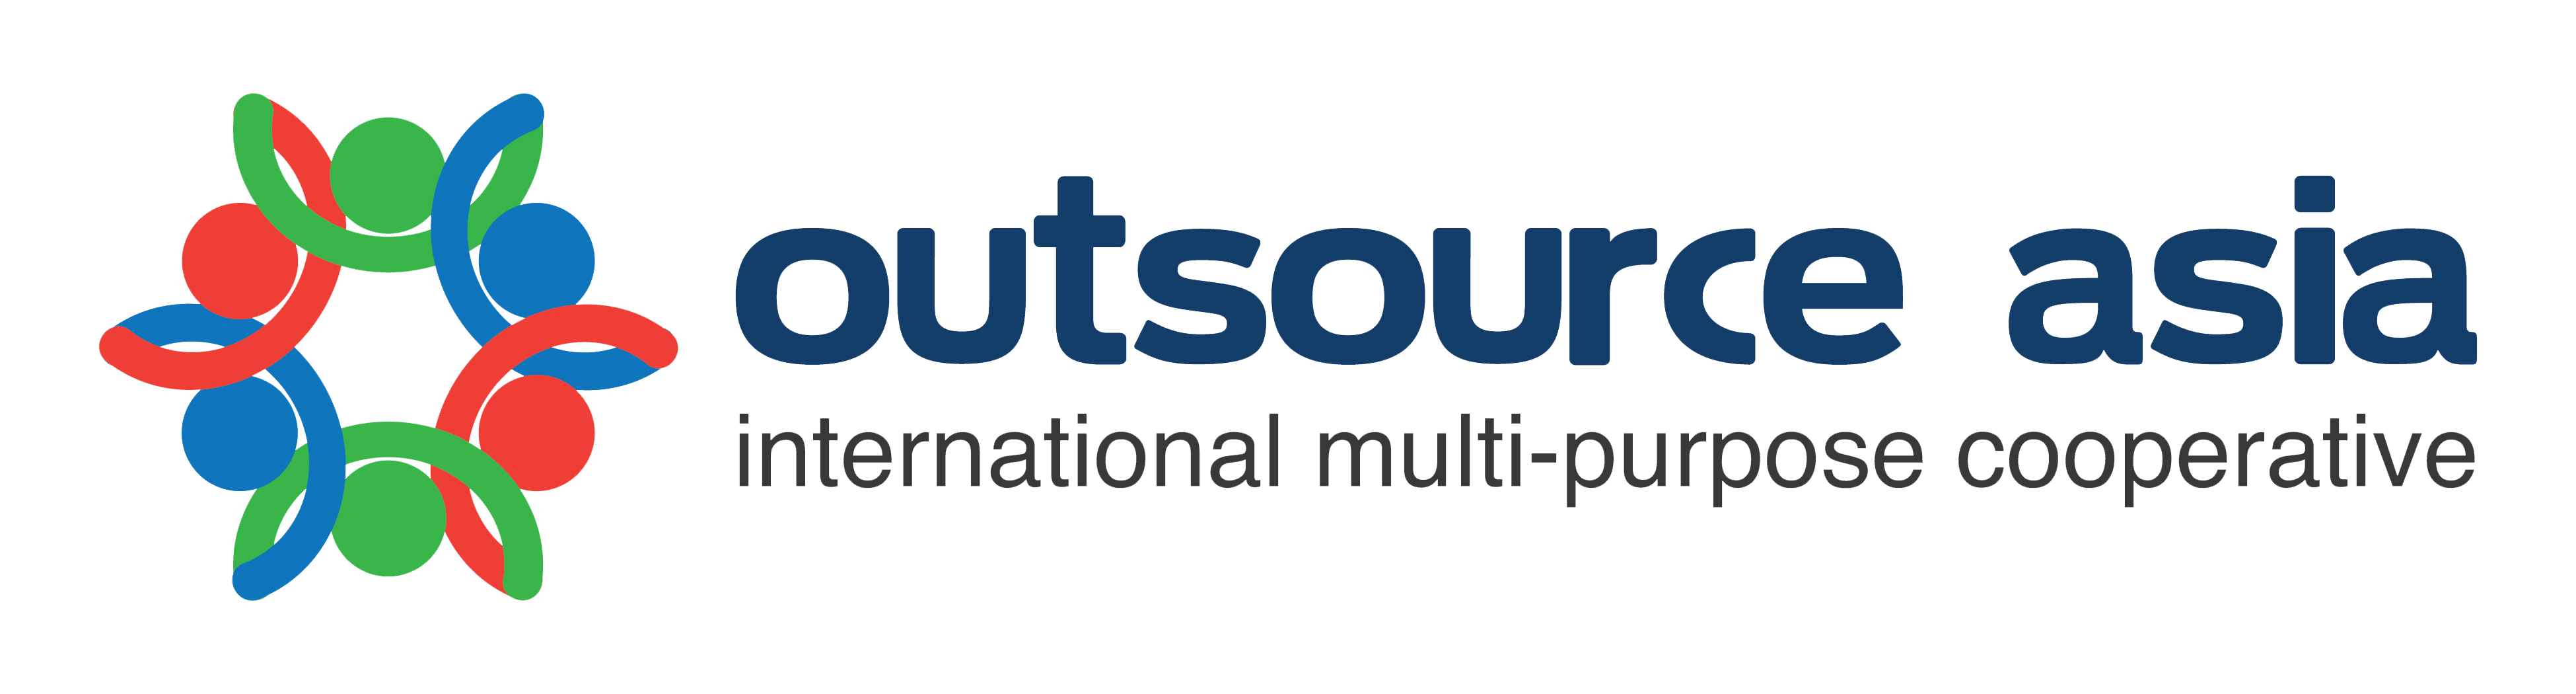 Outsource Asia International Multi- Purpose Cooperative